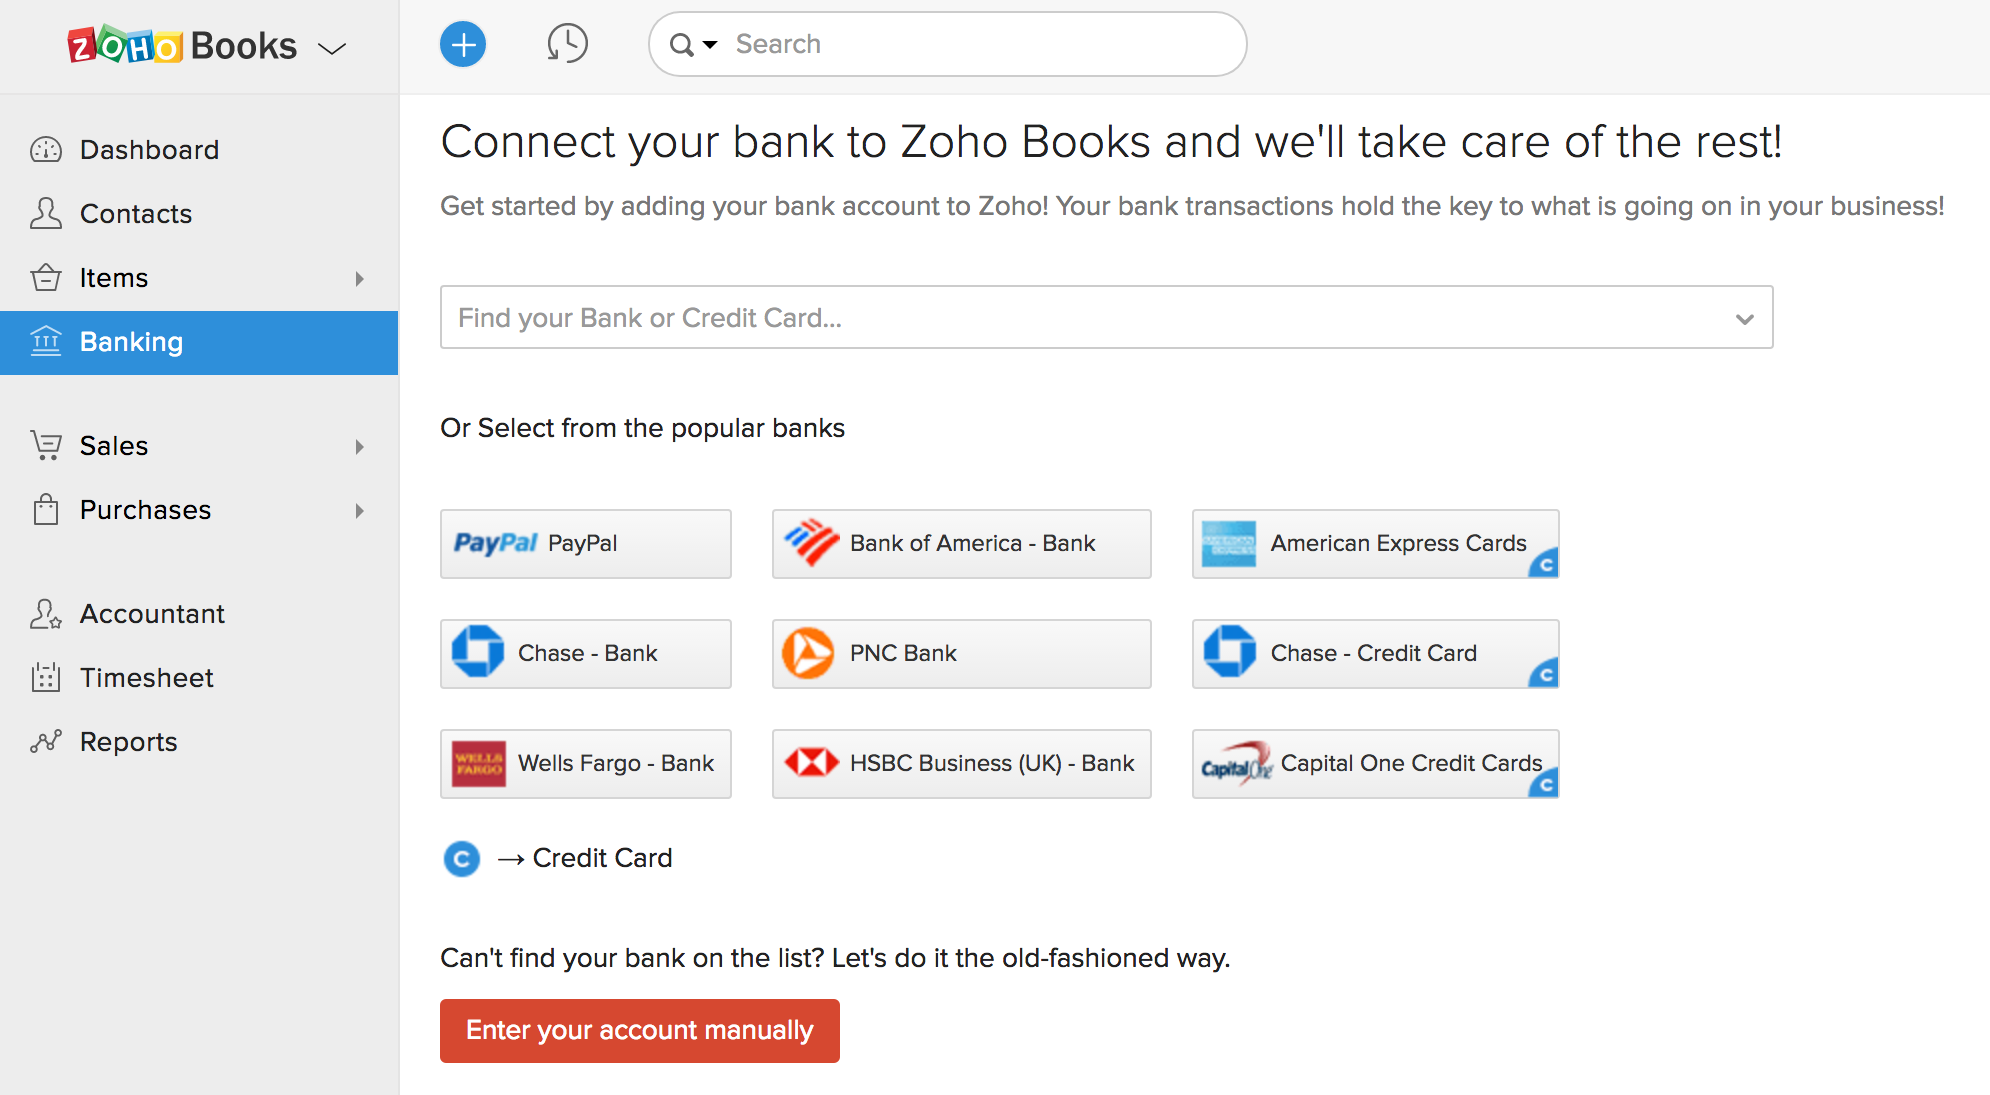 Migrate to Zoho Books From Other Systems | Help | Zoho Books